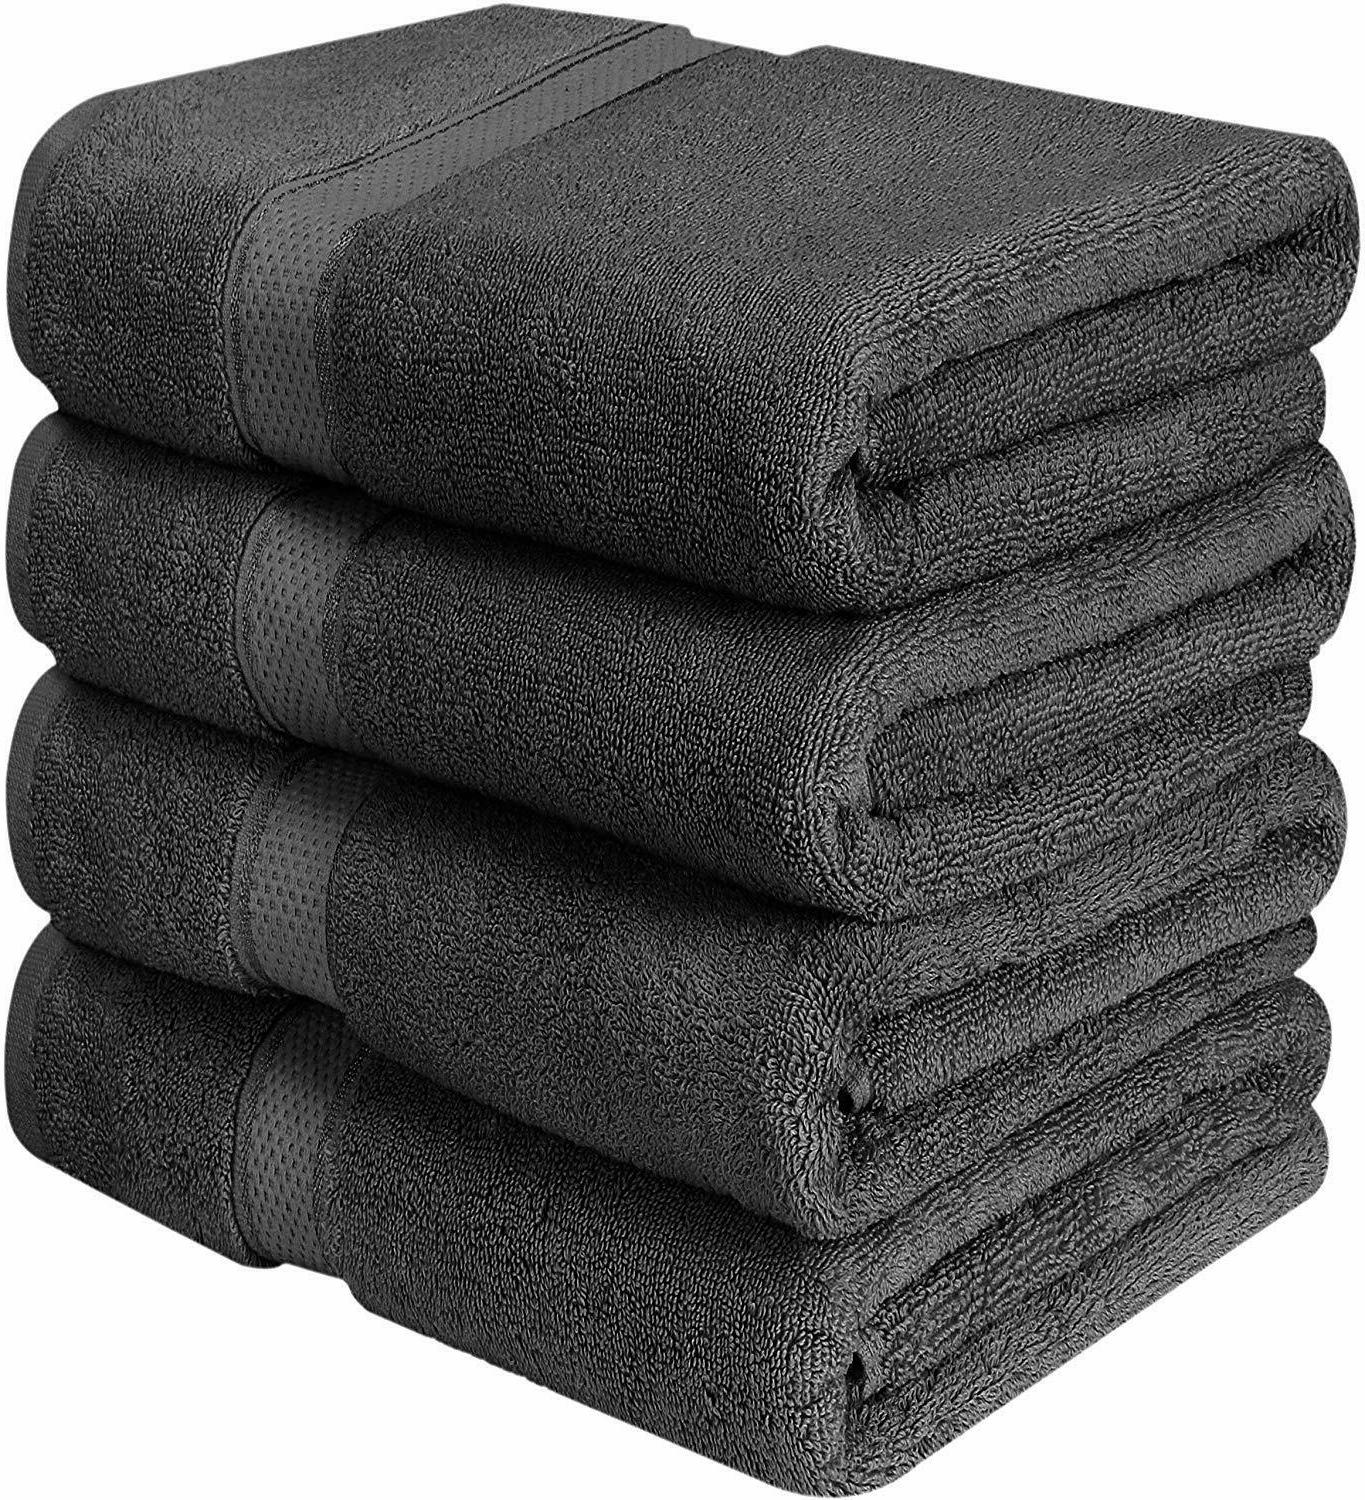 Bath Towels 4 Pack Towel Set 27 x 54 Inches Cotton Soft 600